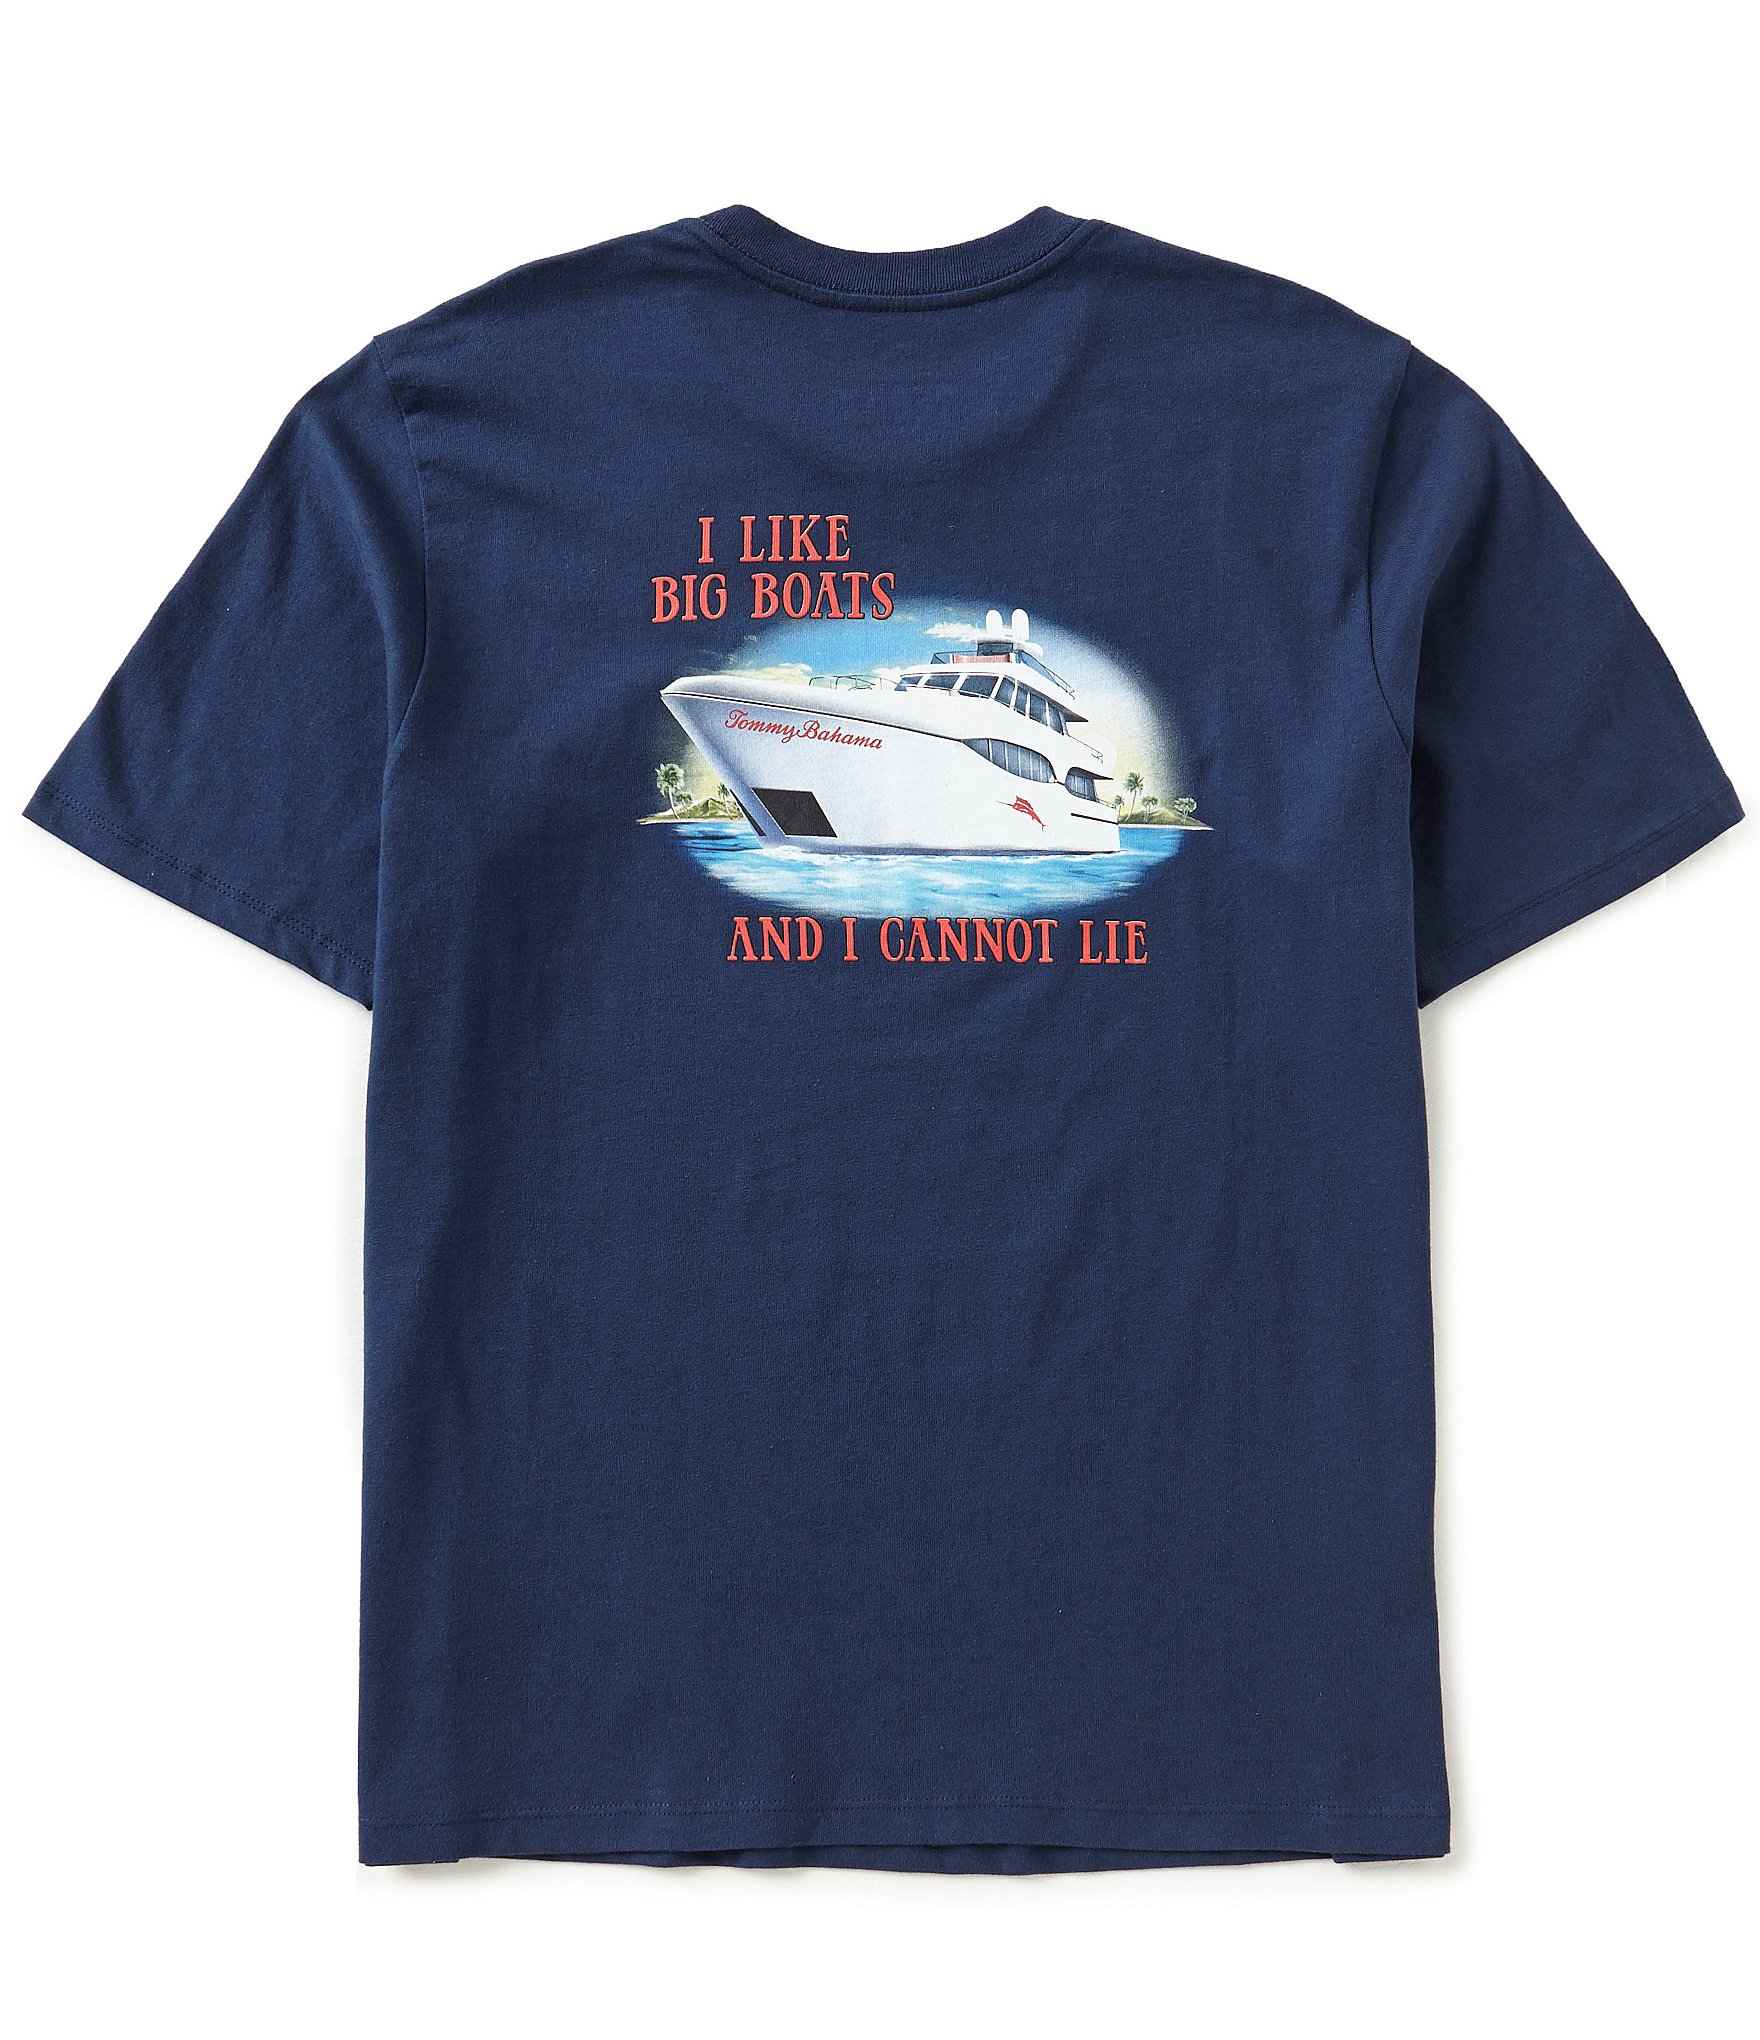 Tommy bahama big boats short sleeve tee dillards for Do tommy bahama shirts run big